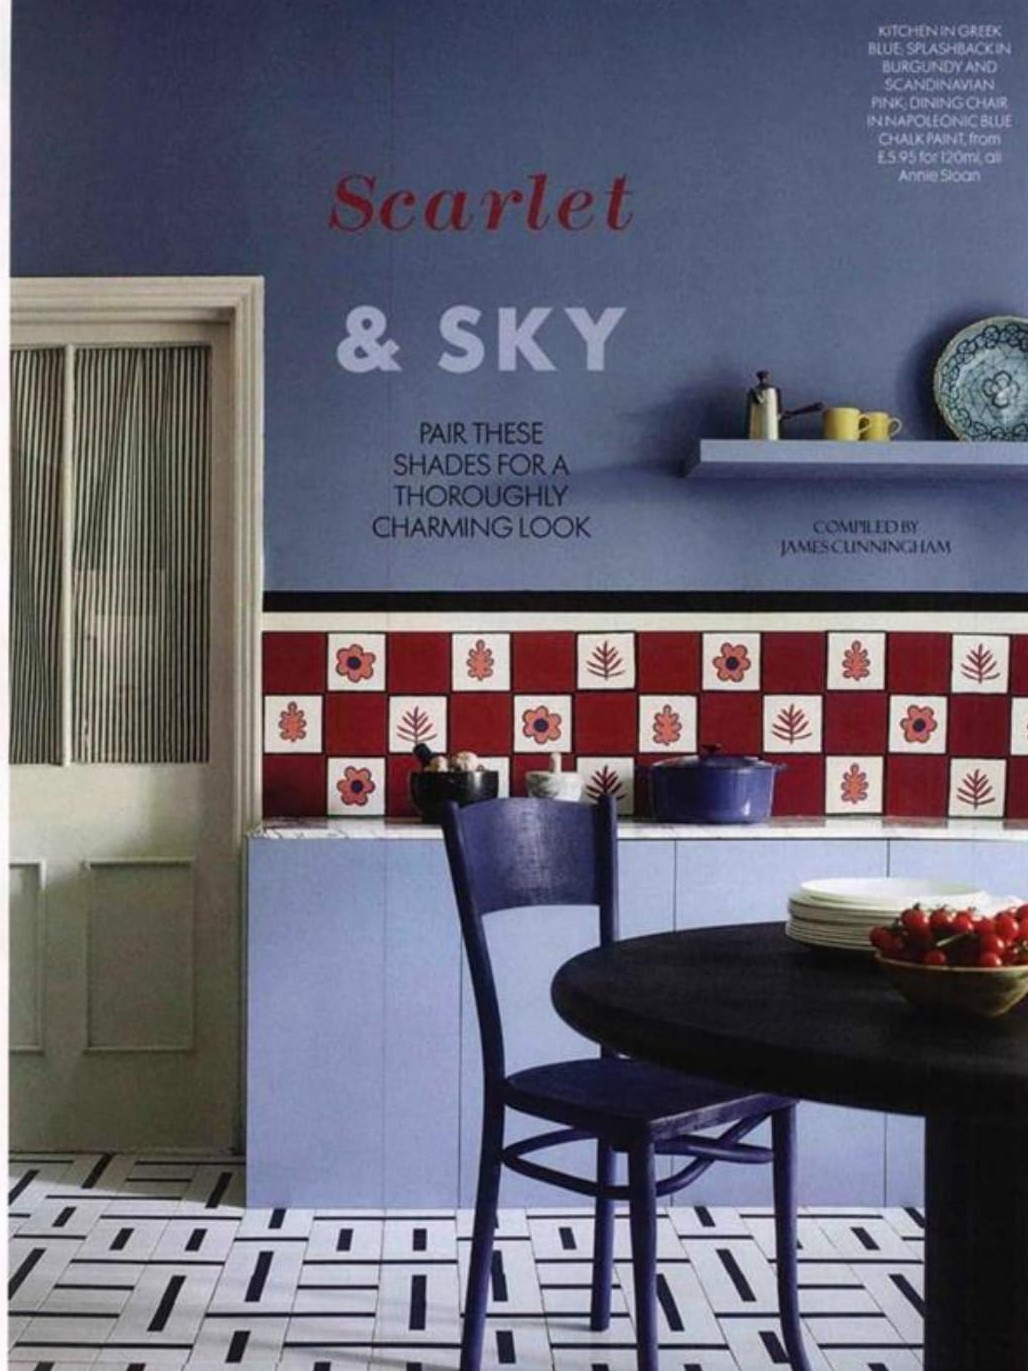 Annie Sloan's Chalk Paint-covered kitchen captures Red's colour combo of the month, scarlet and sky